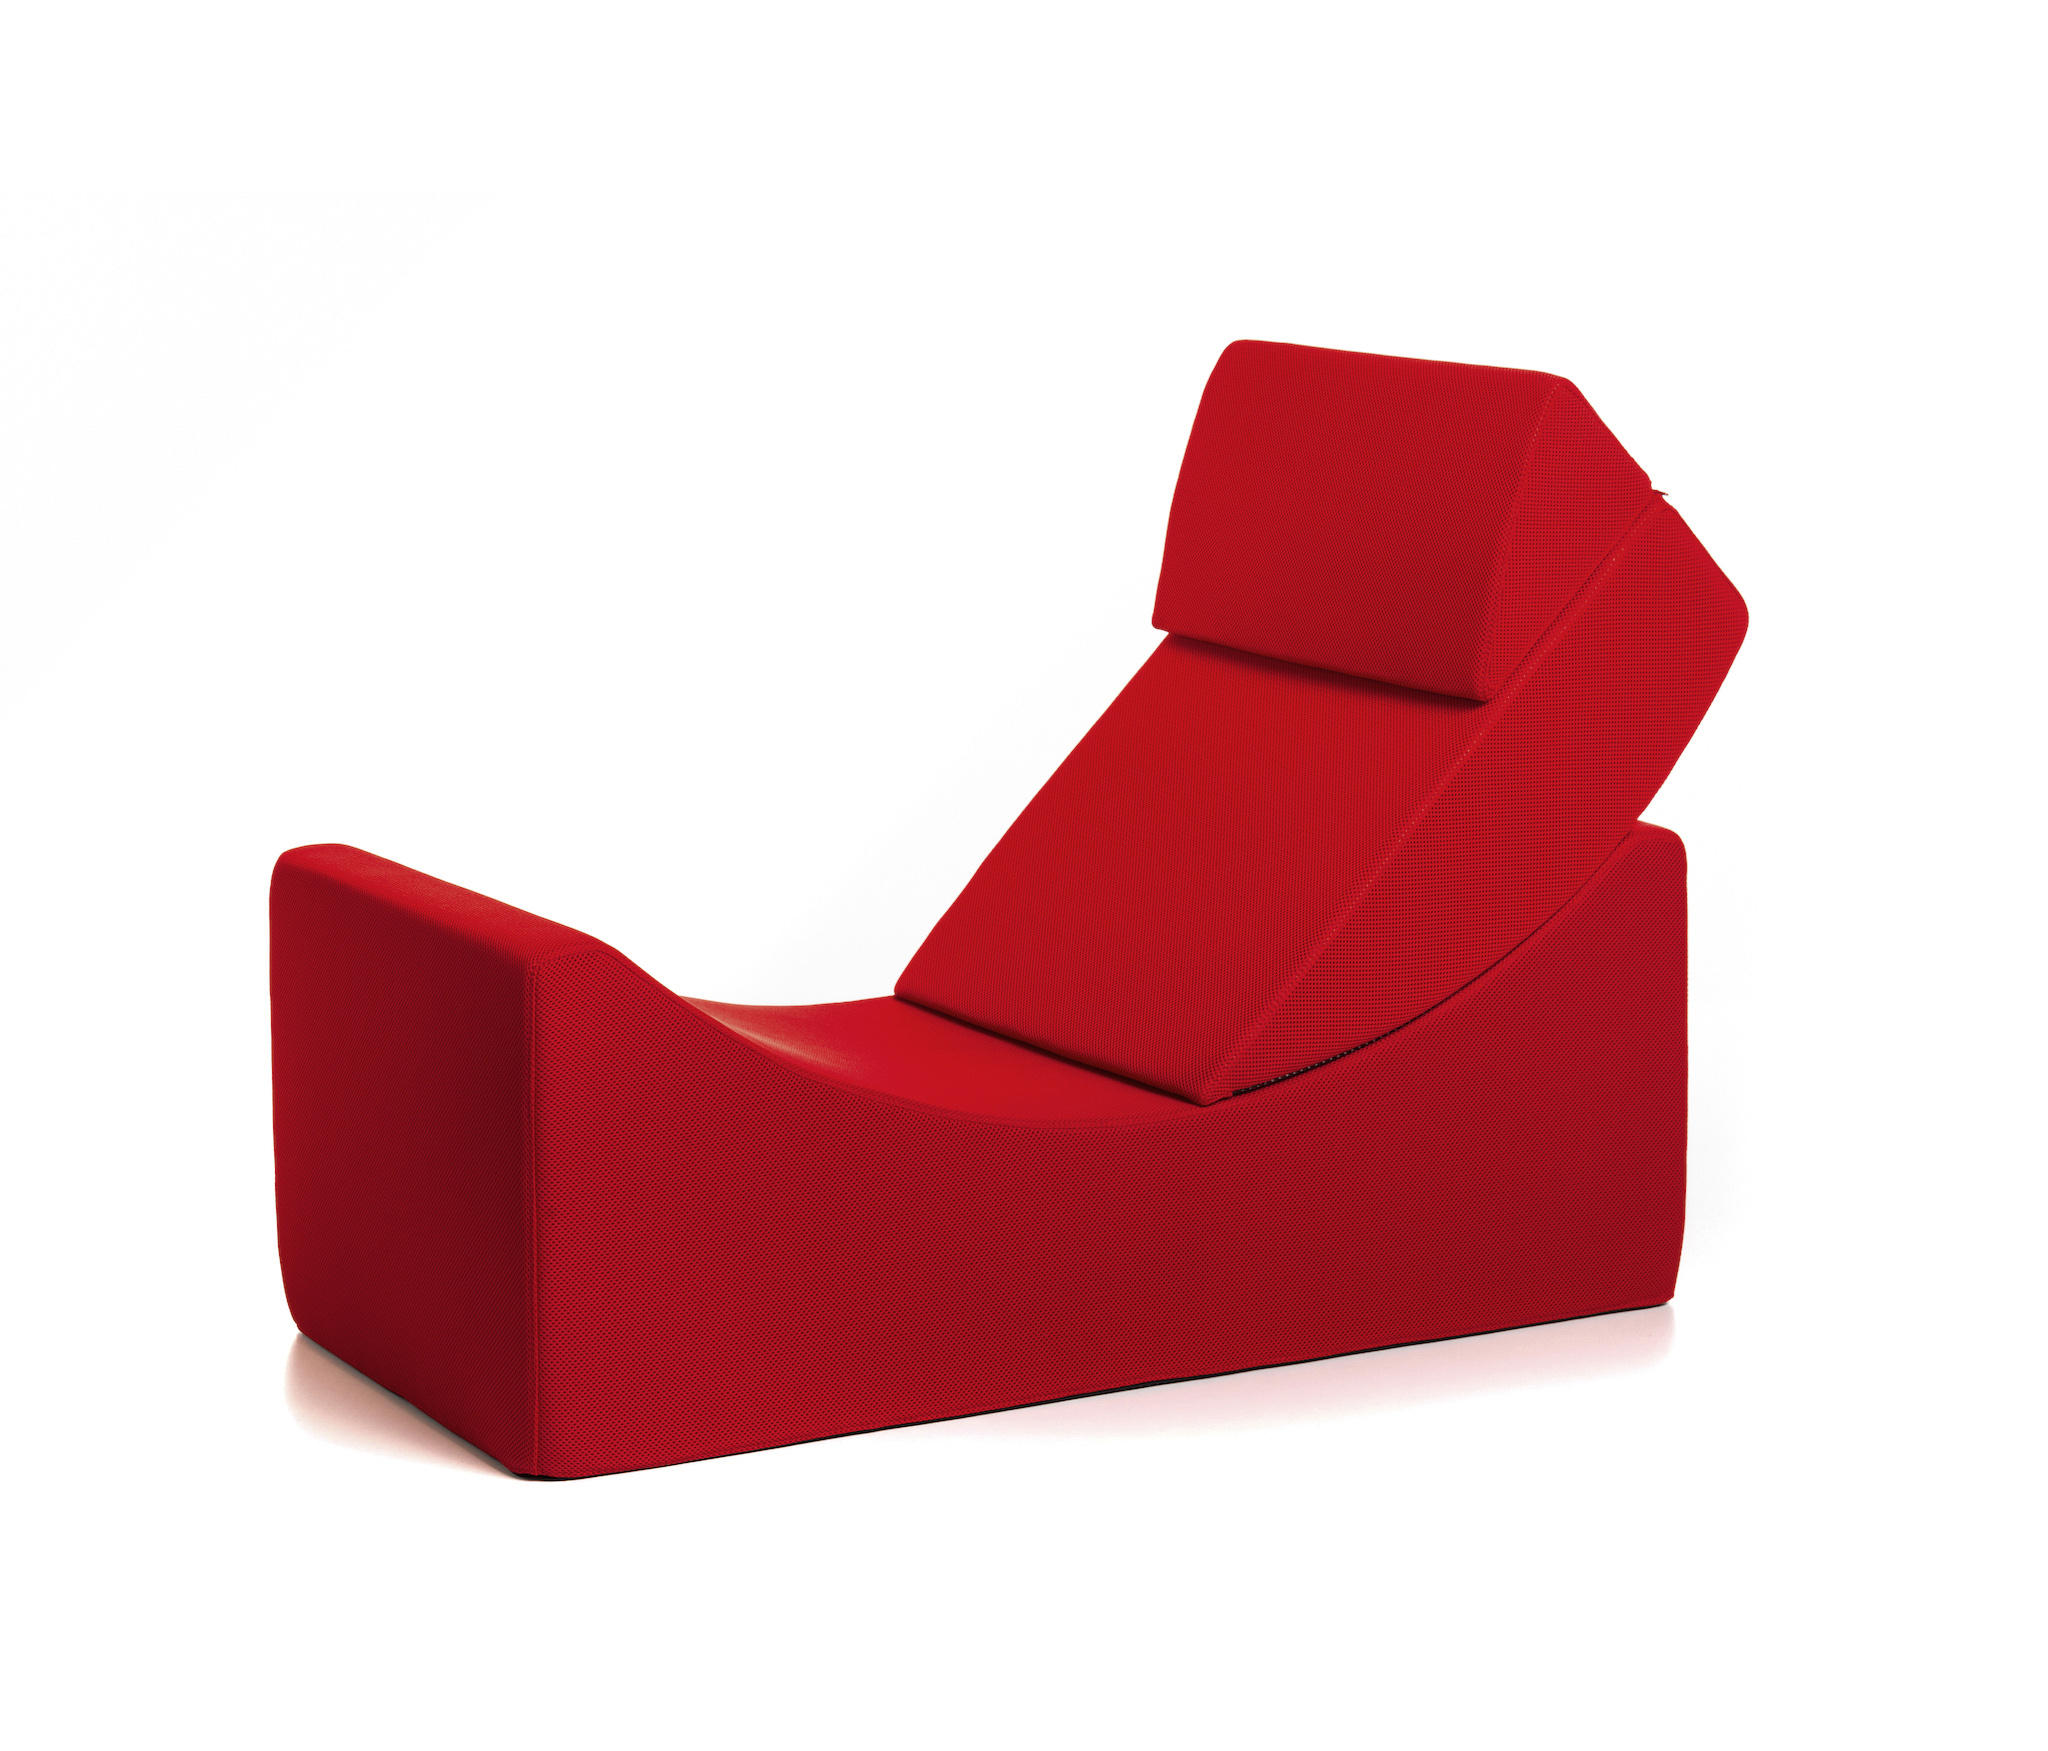 MOON LARGE - Chaise Longues von Lina Design | Architonic